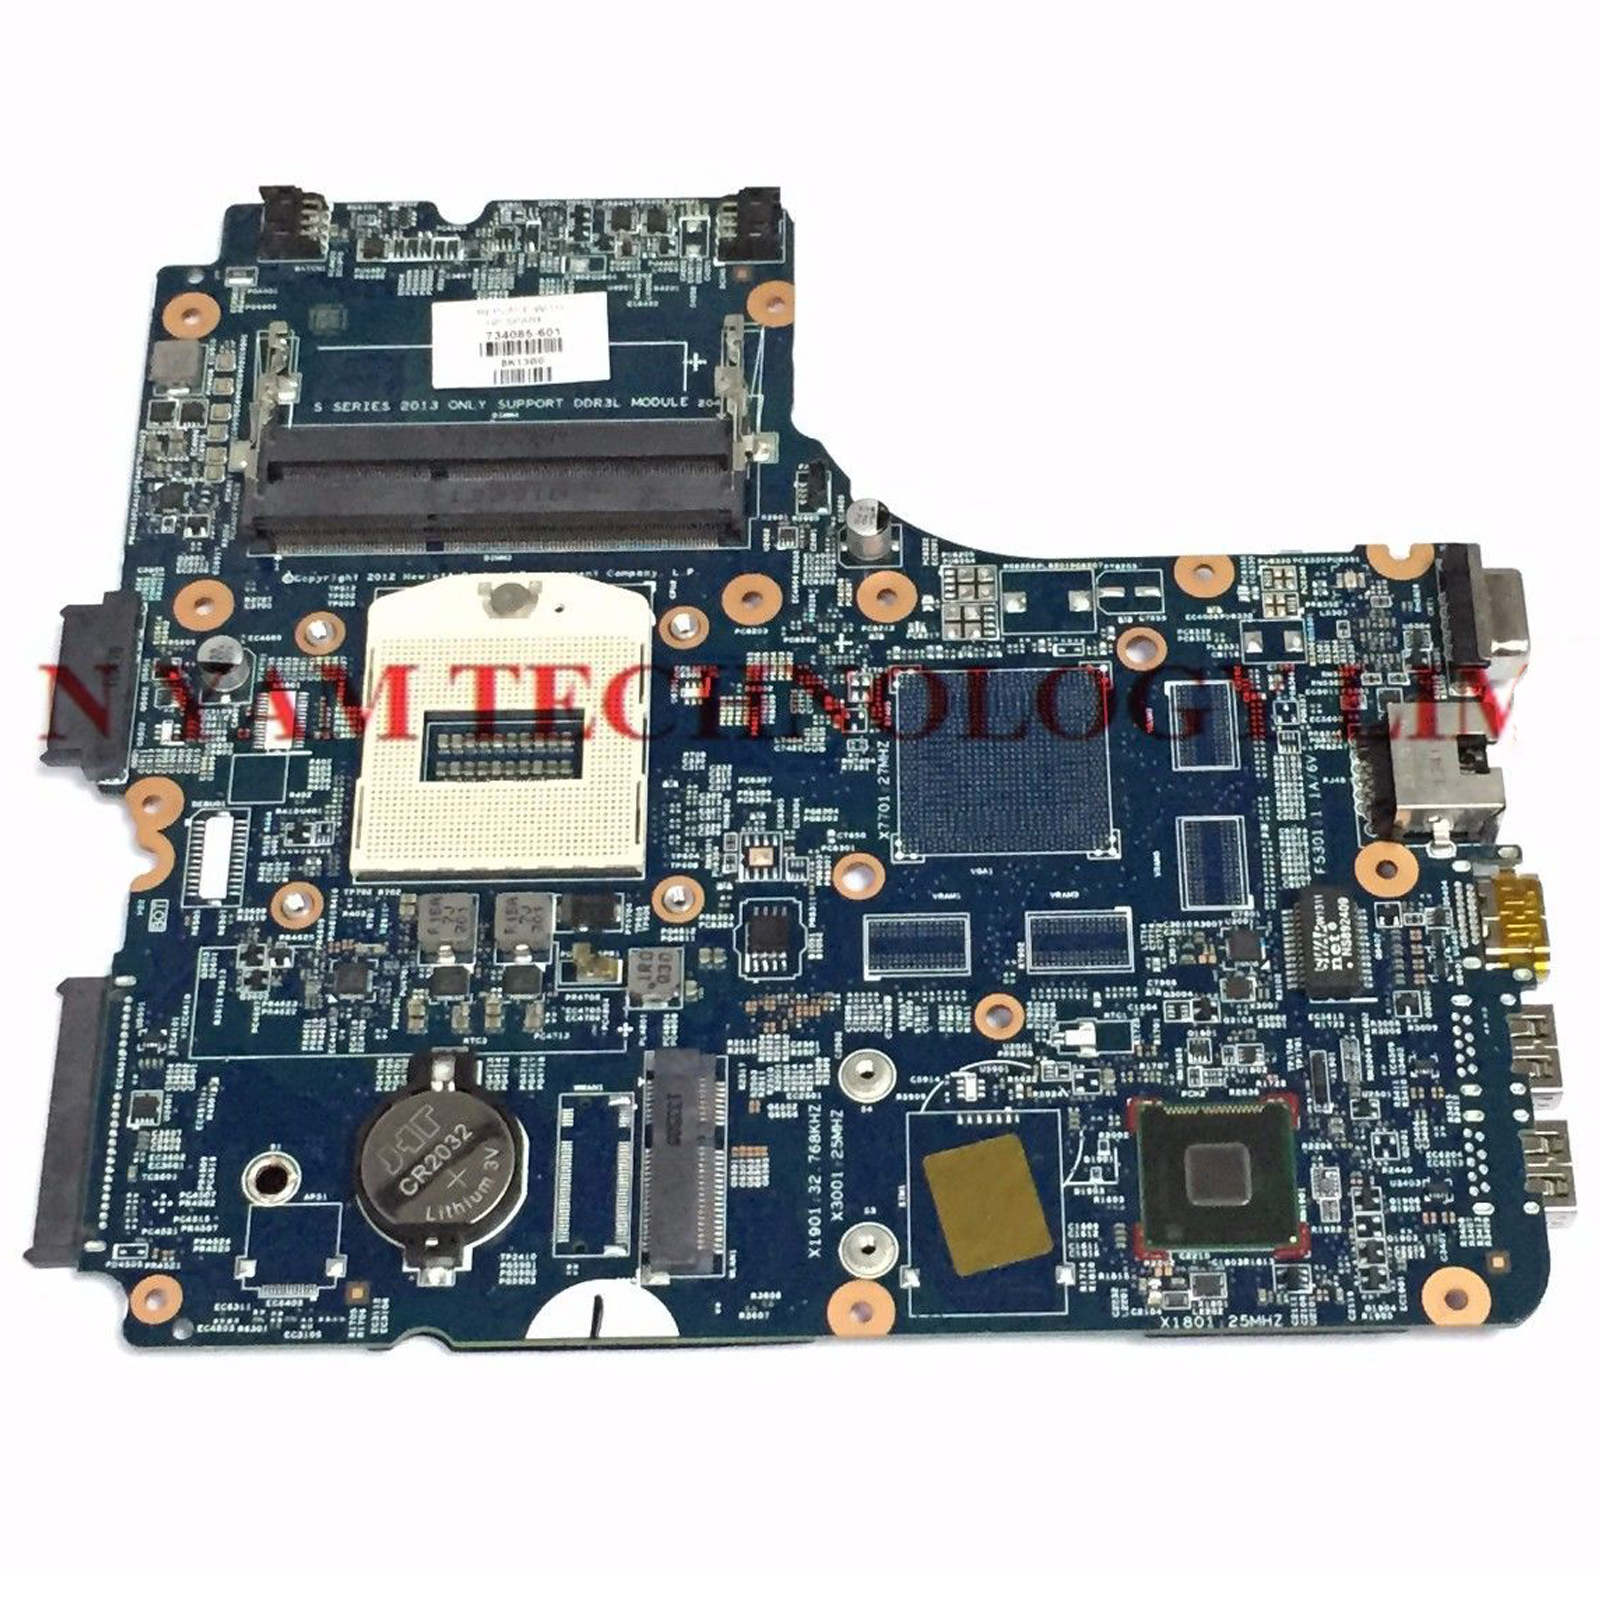 AIRIS P440 MOTHERBOARD DRIVERS FOR WINDOWS 8